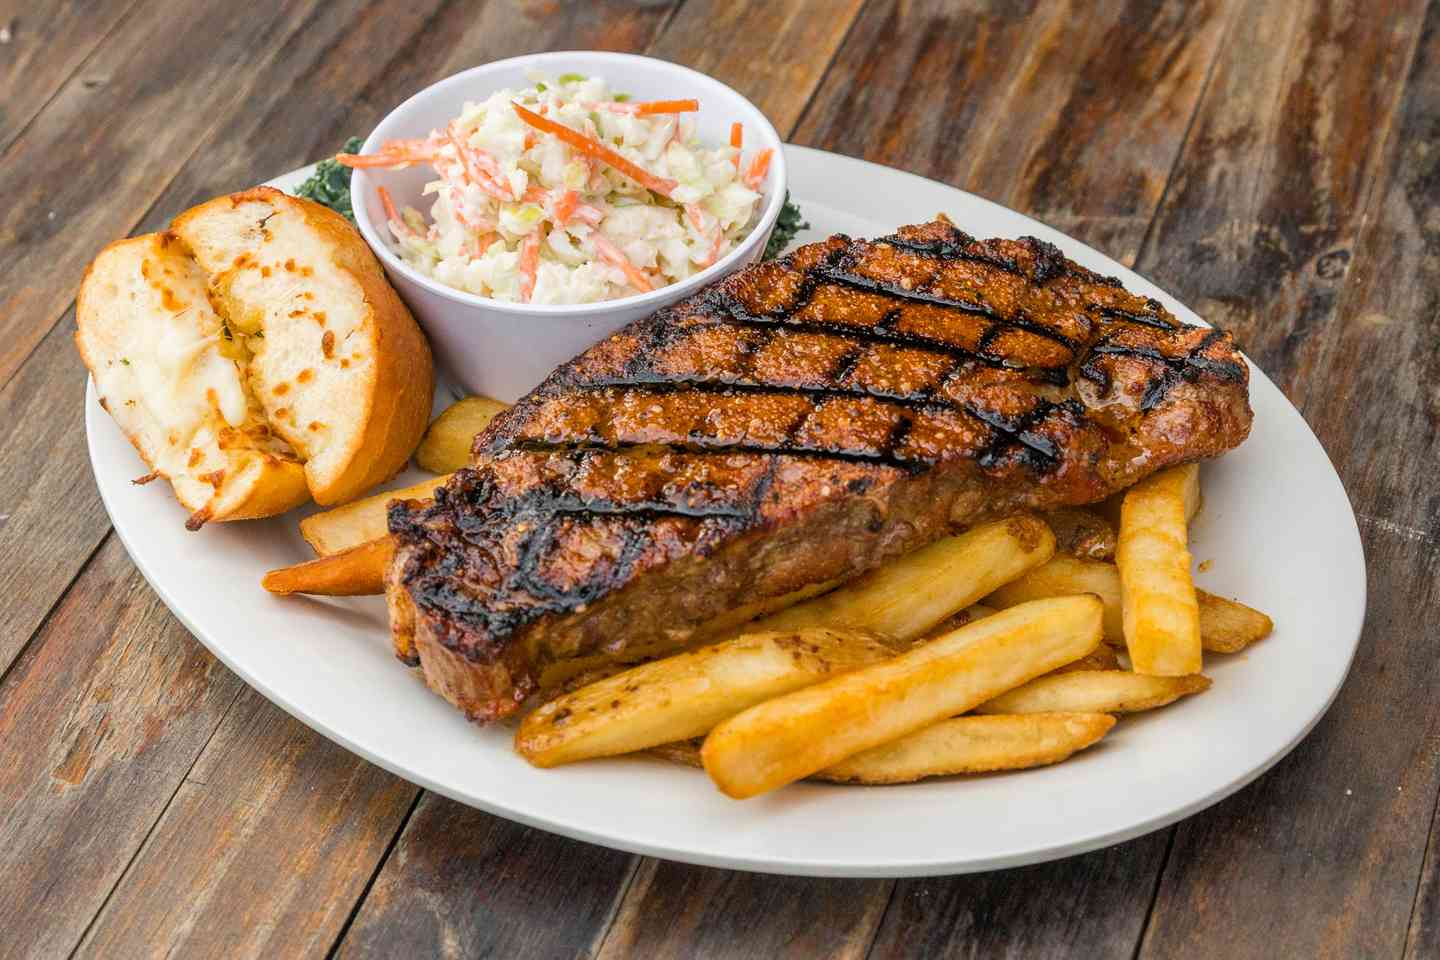 12oz Strip Steak*